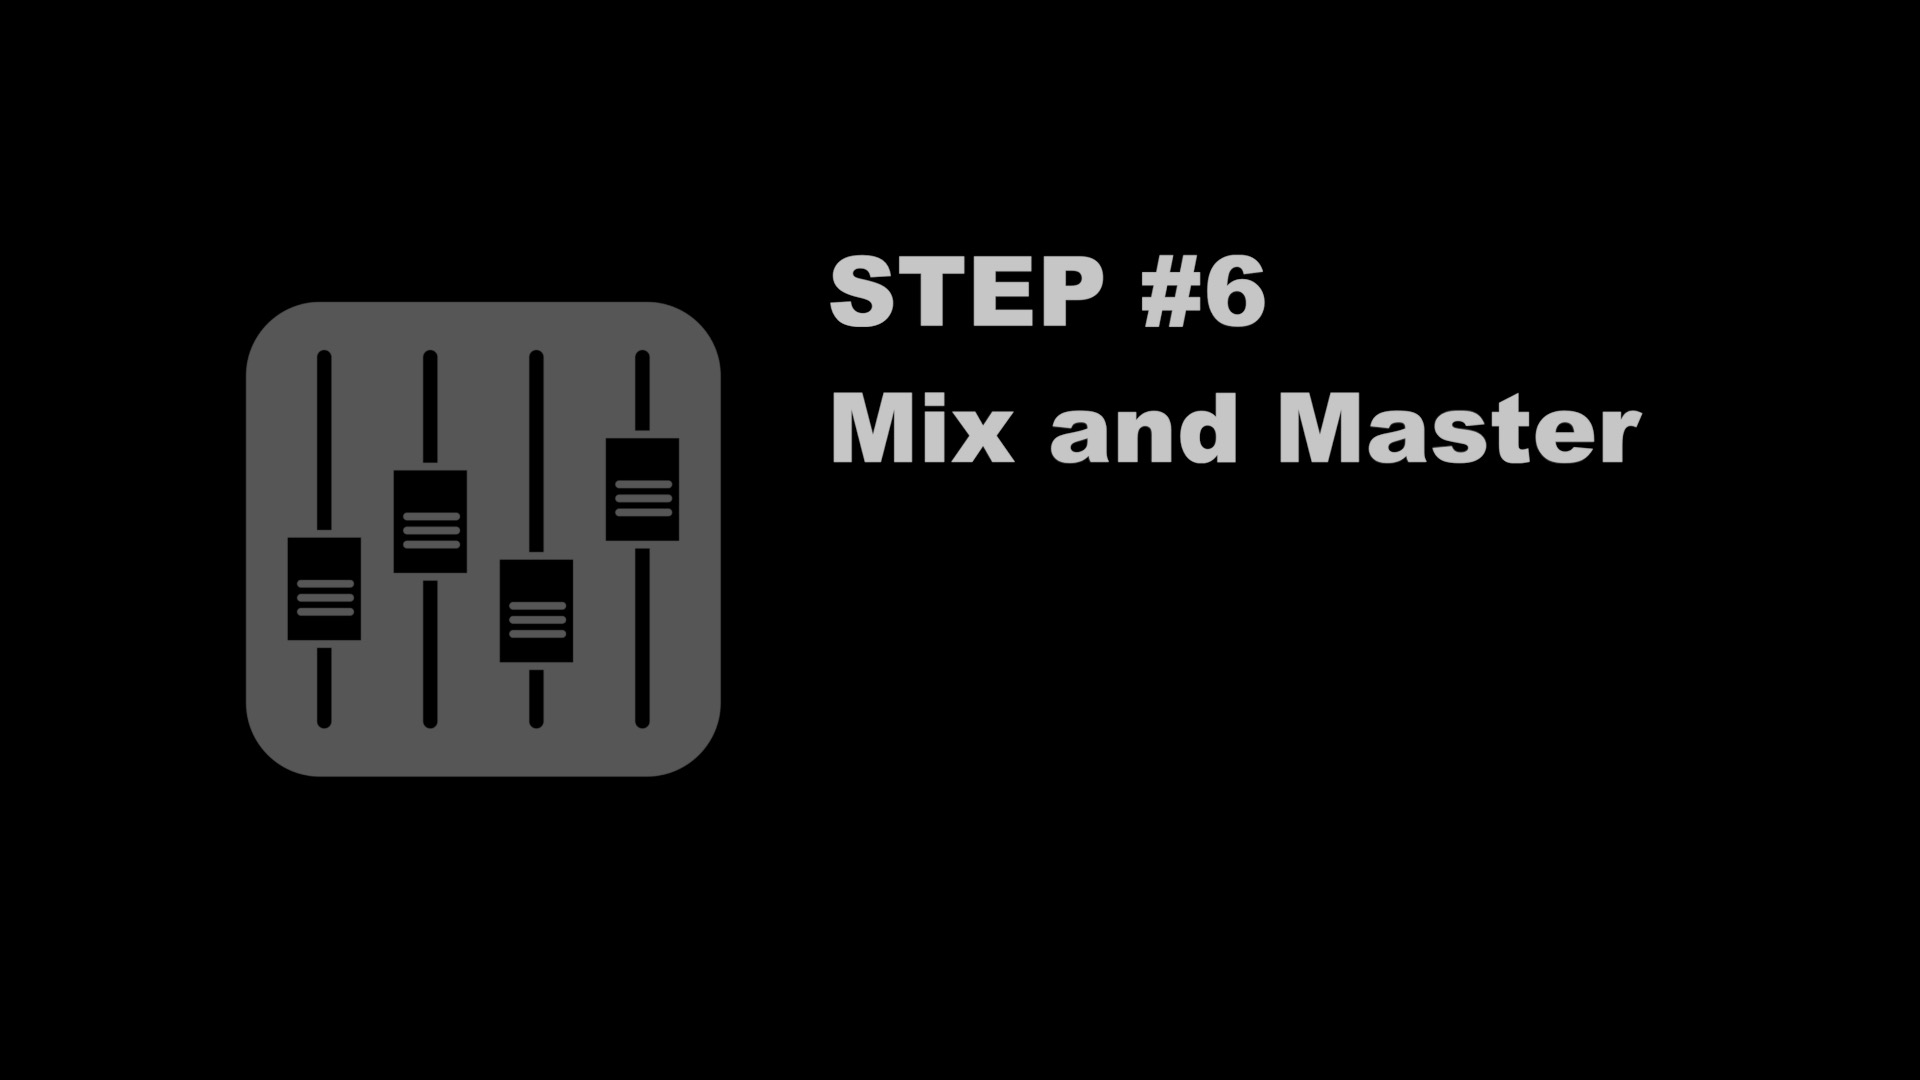 Final Cut Pro X Training | Step 6 Mix and Master | Final Cut Pro X